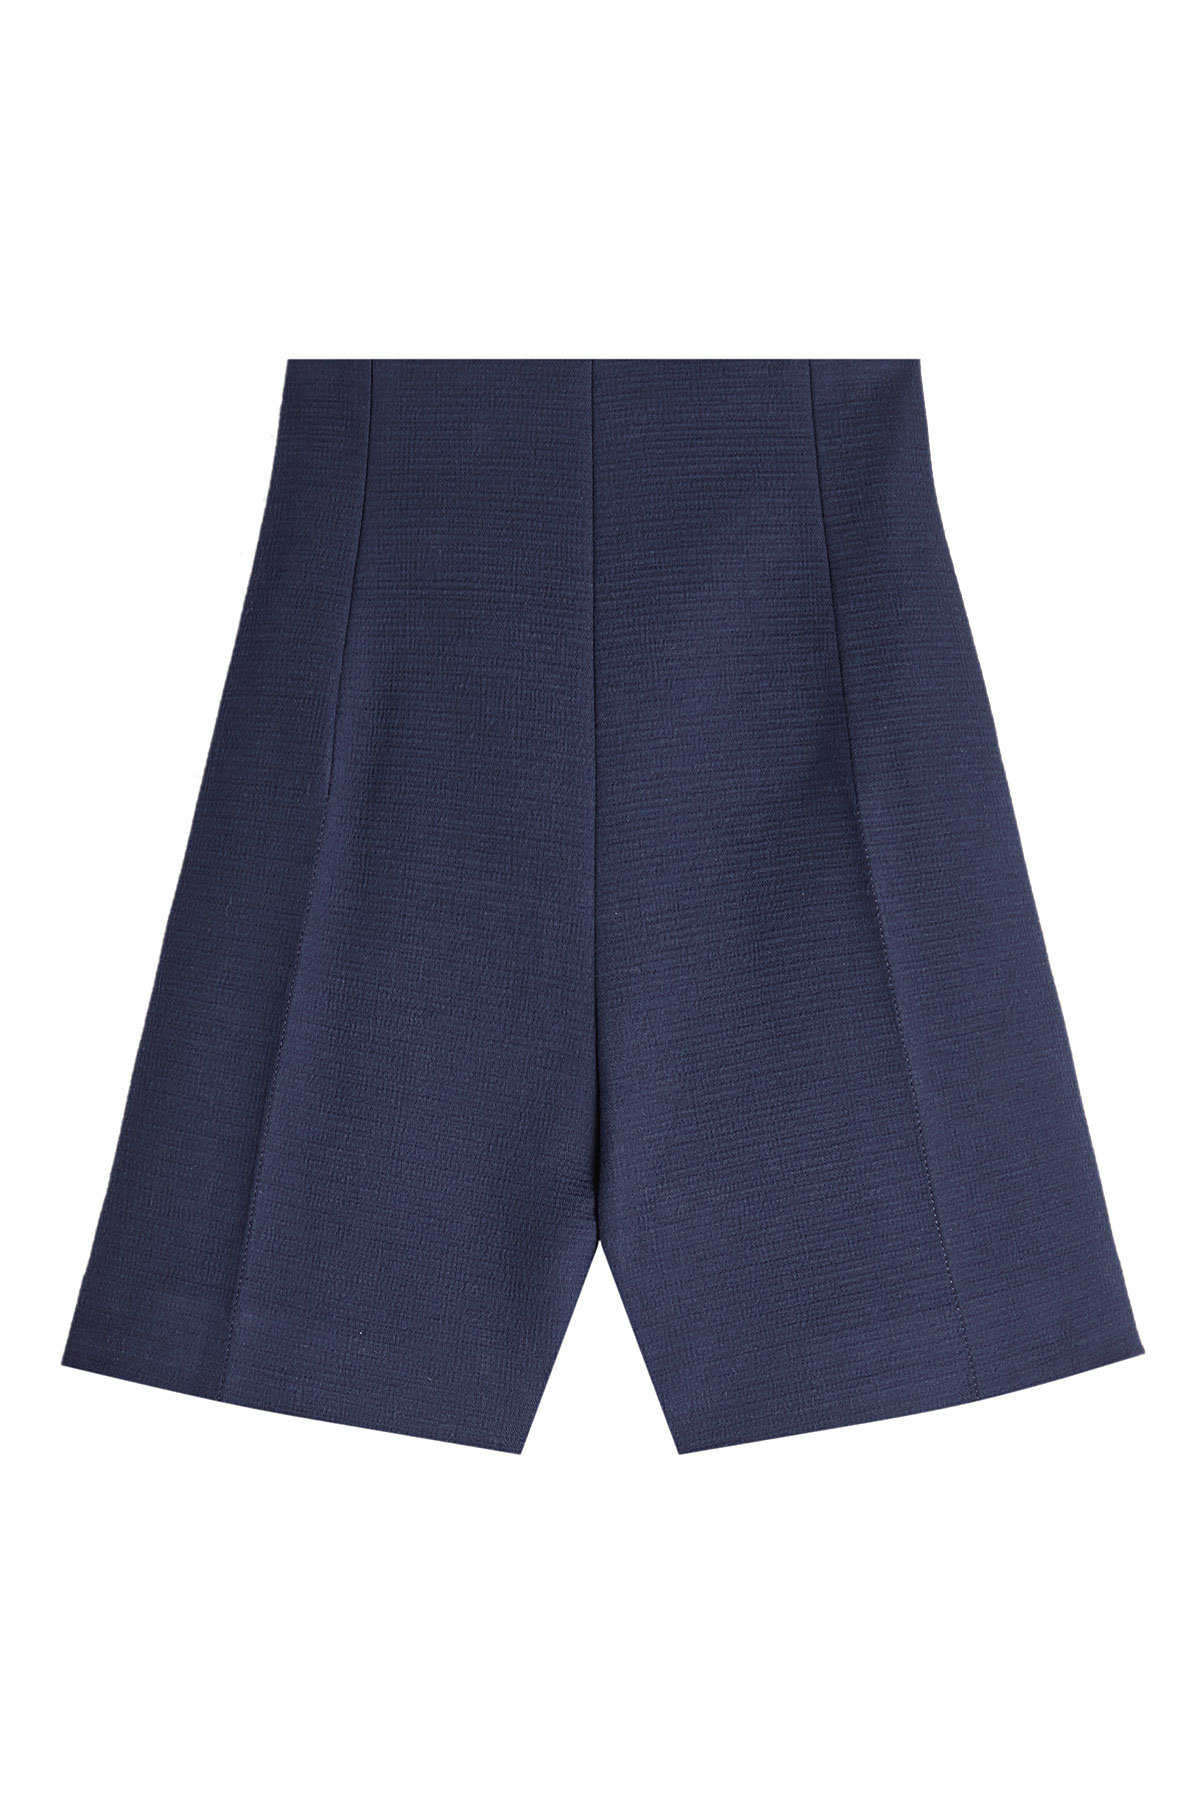 c1ee5d1544a Nina Ricci Tailored Shorts GOOFASH 280932